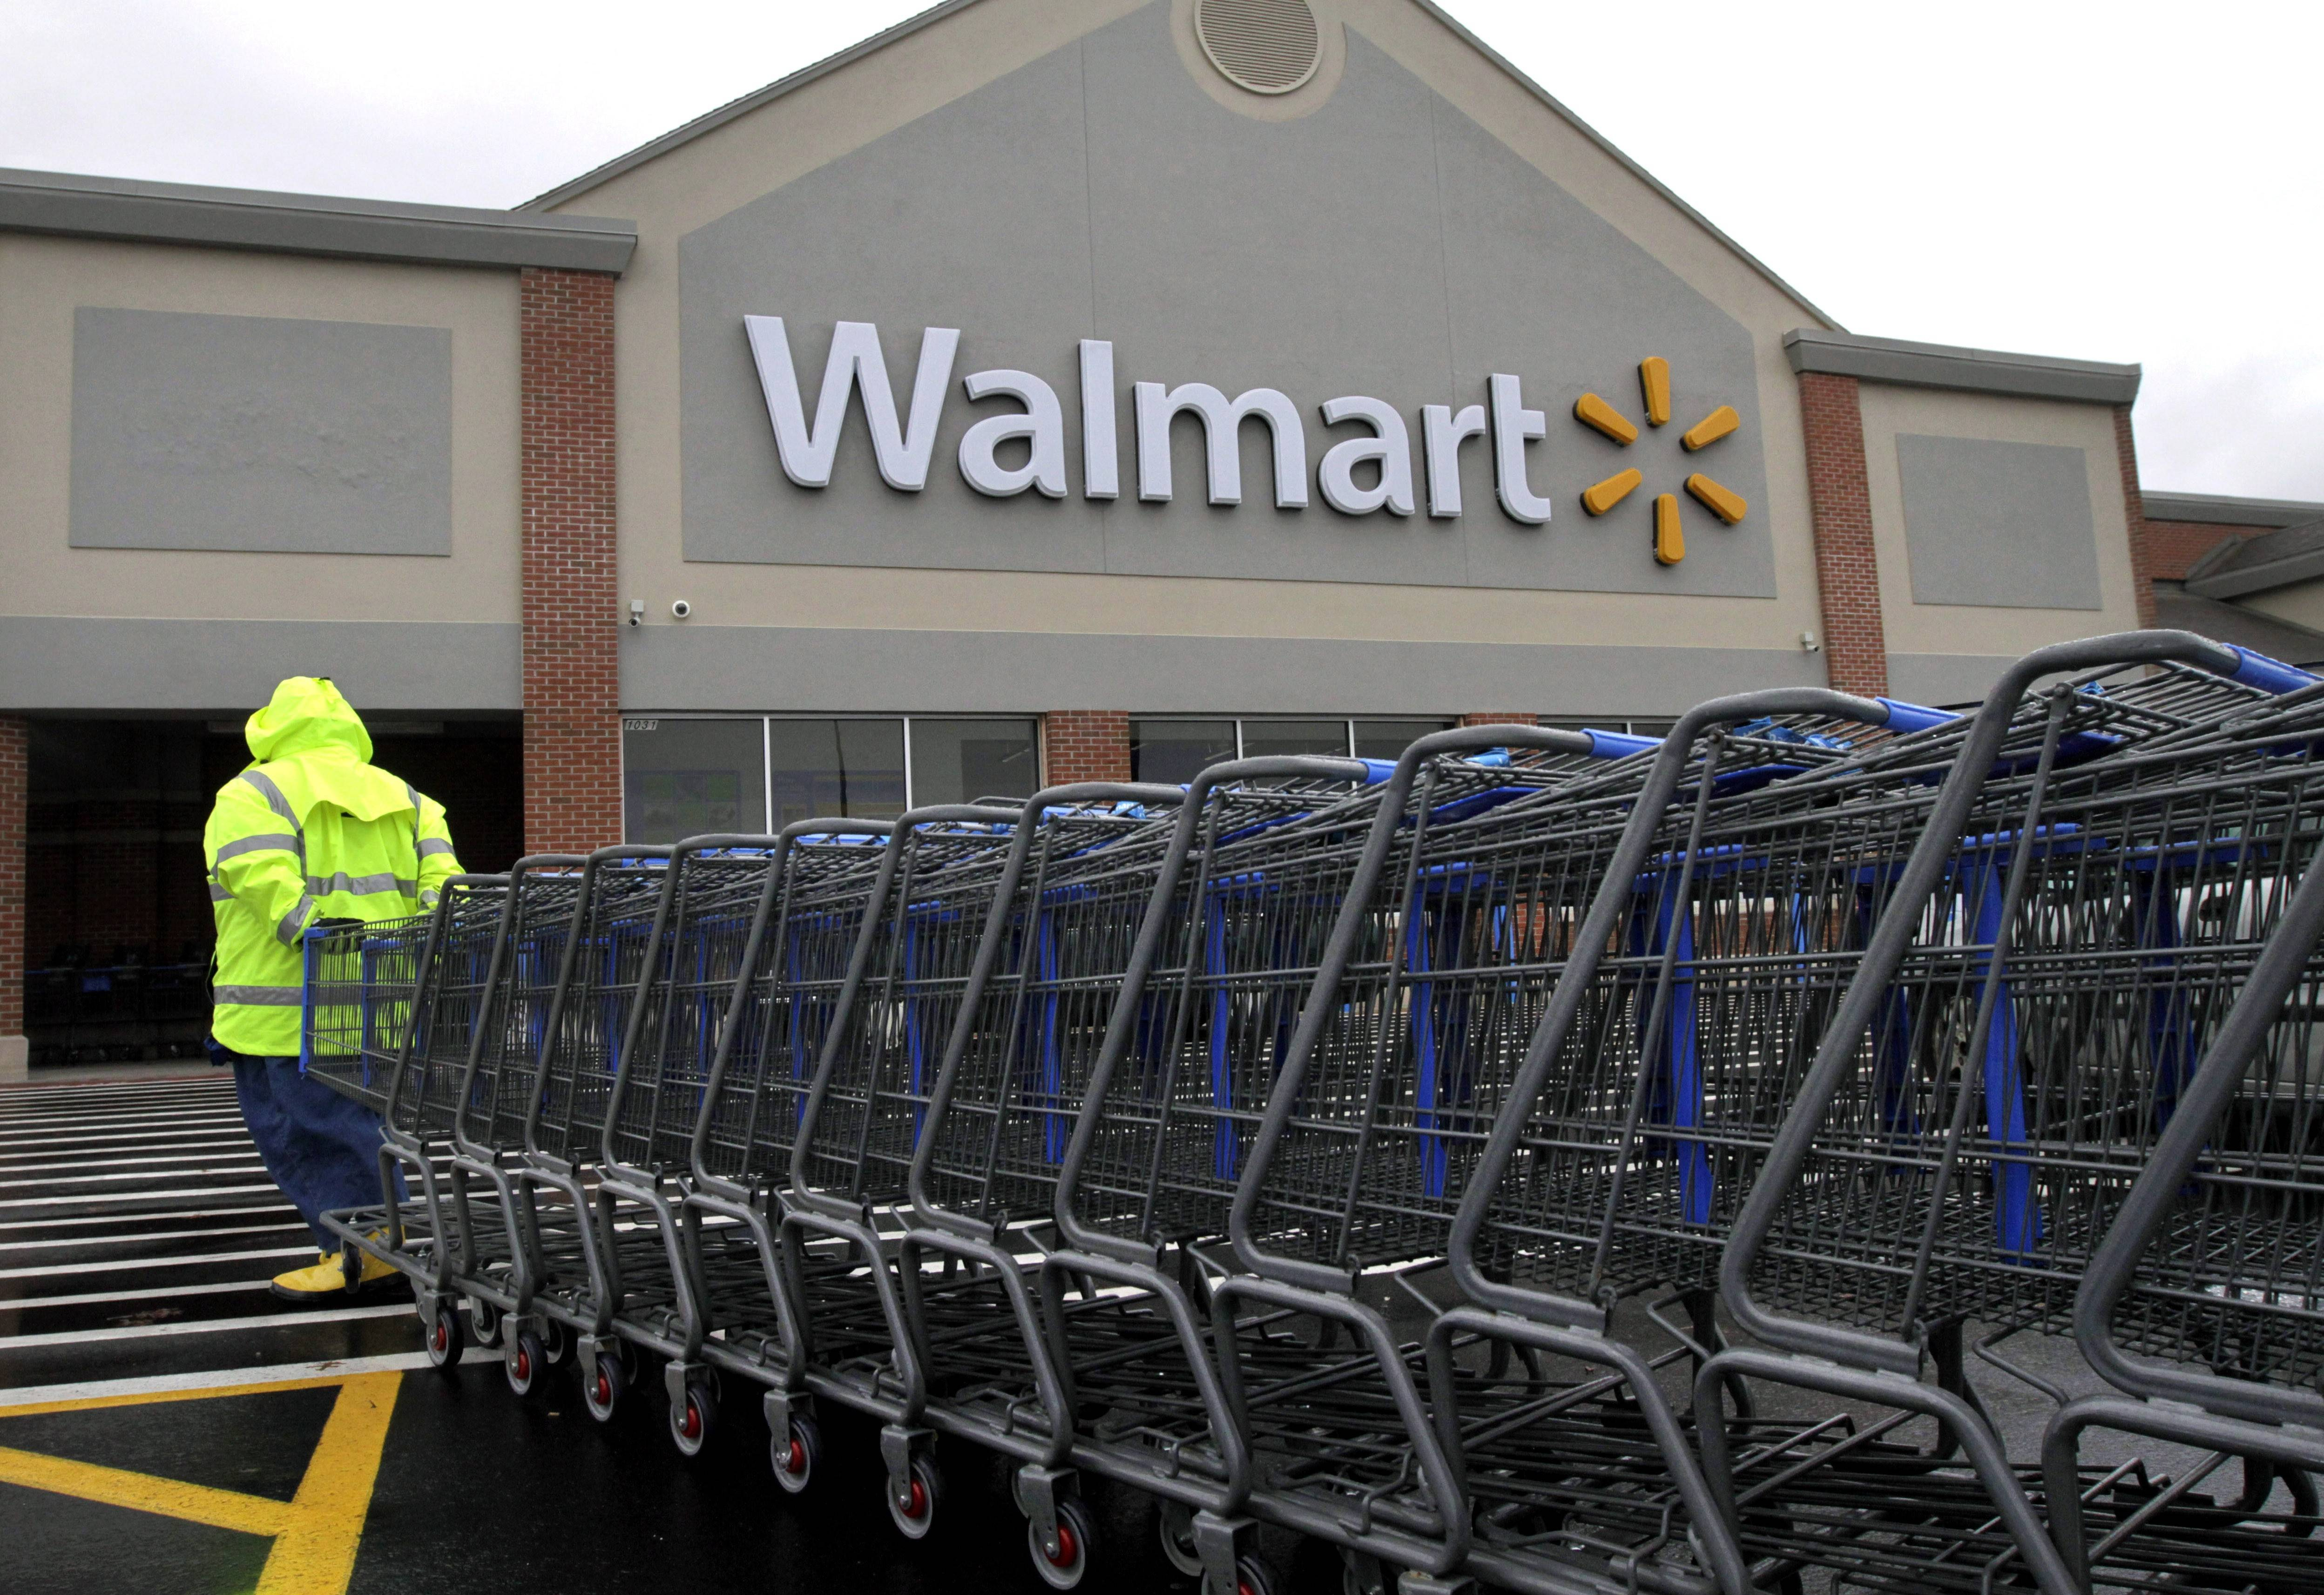 Wal-Mart is rolling out a feature that will enable its website to show shoppers more products that they may like, based on their previous purchases. It also will customize Wal-Mart's home page for each shopper based on where that customer lives, showing local weather and events, as well as the customer's search and purchase histories.